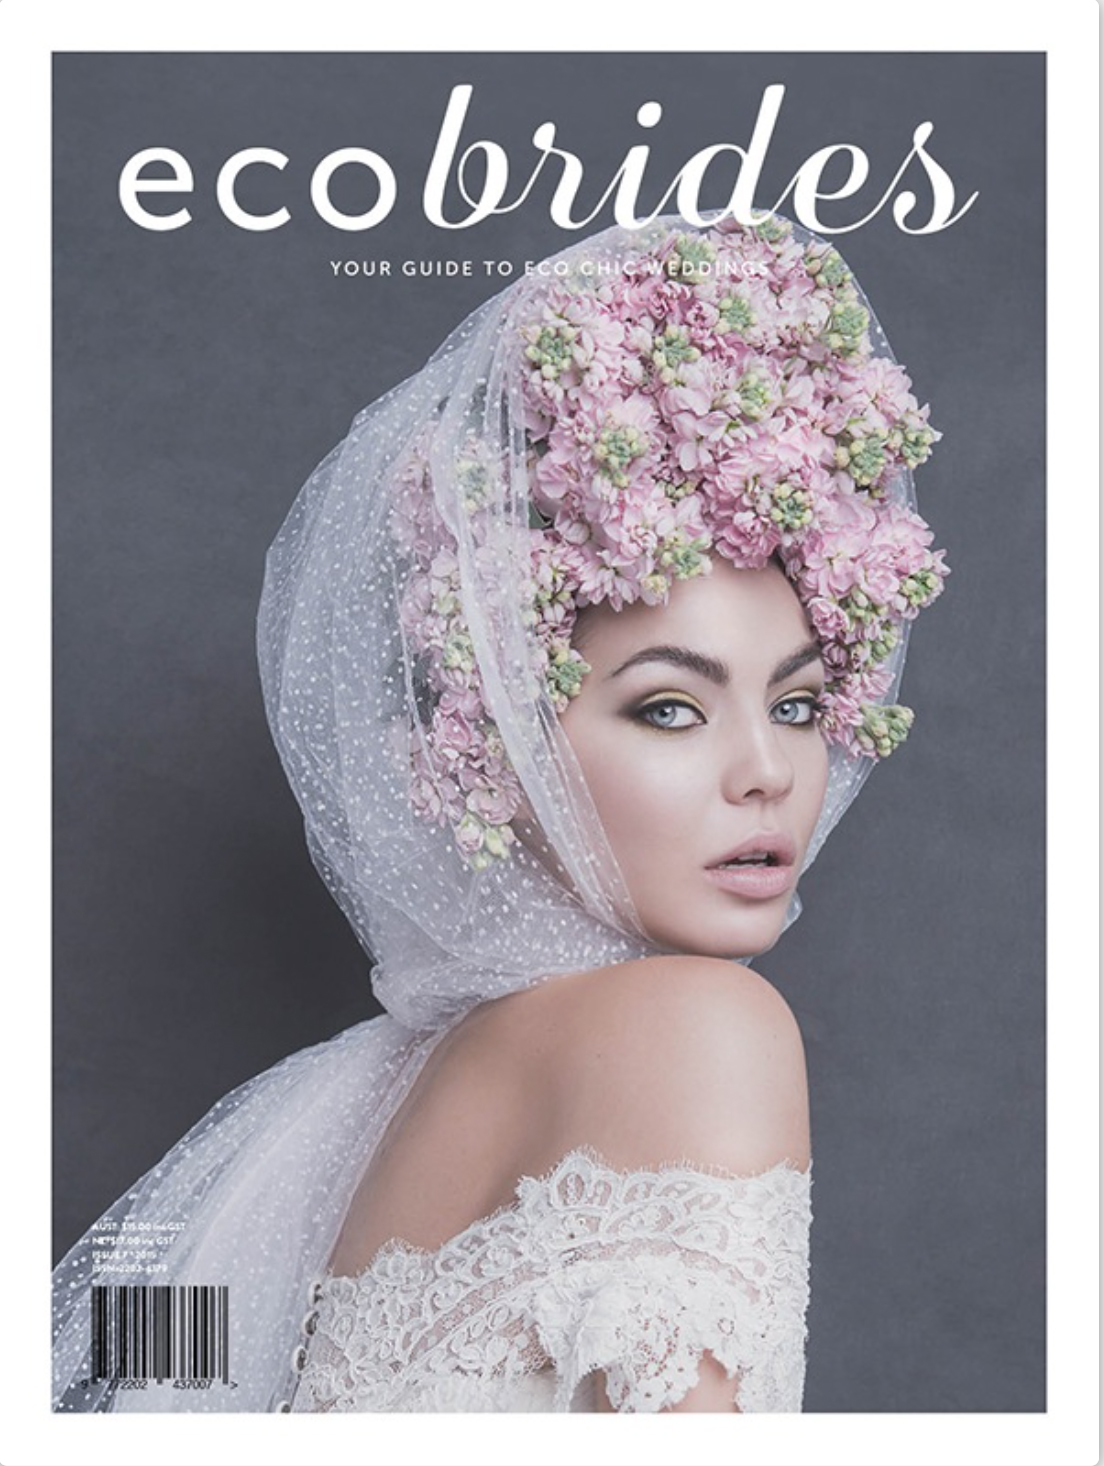 ODE TO MOTHER NATURE for ECOBRIDES Magazine Photography Carmen Rose Stylist Penny Adams Hair by Deanne Makeup Efi Tzagarakis